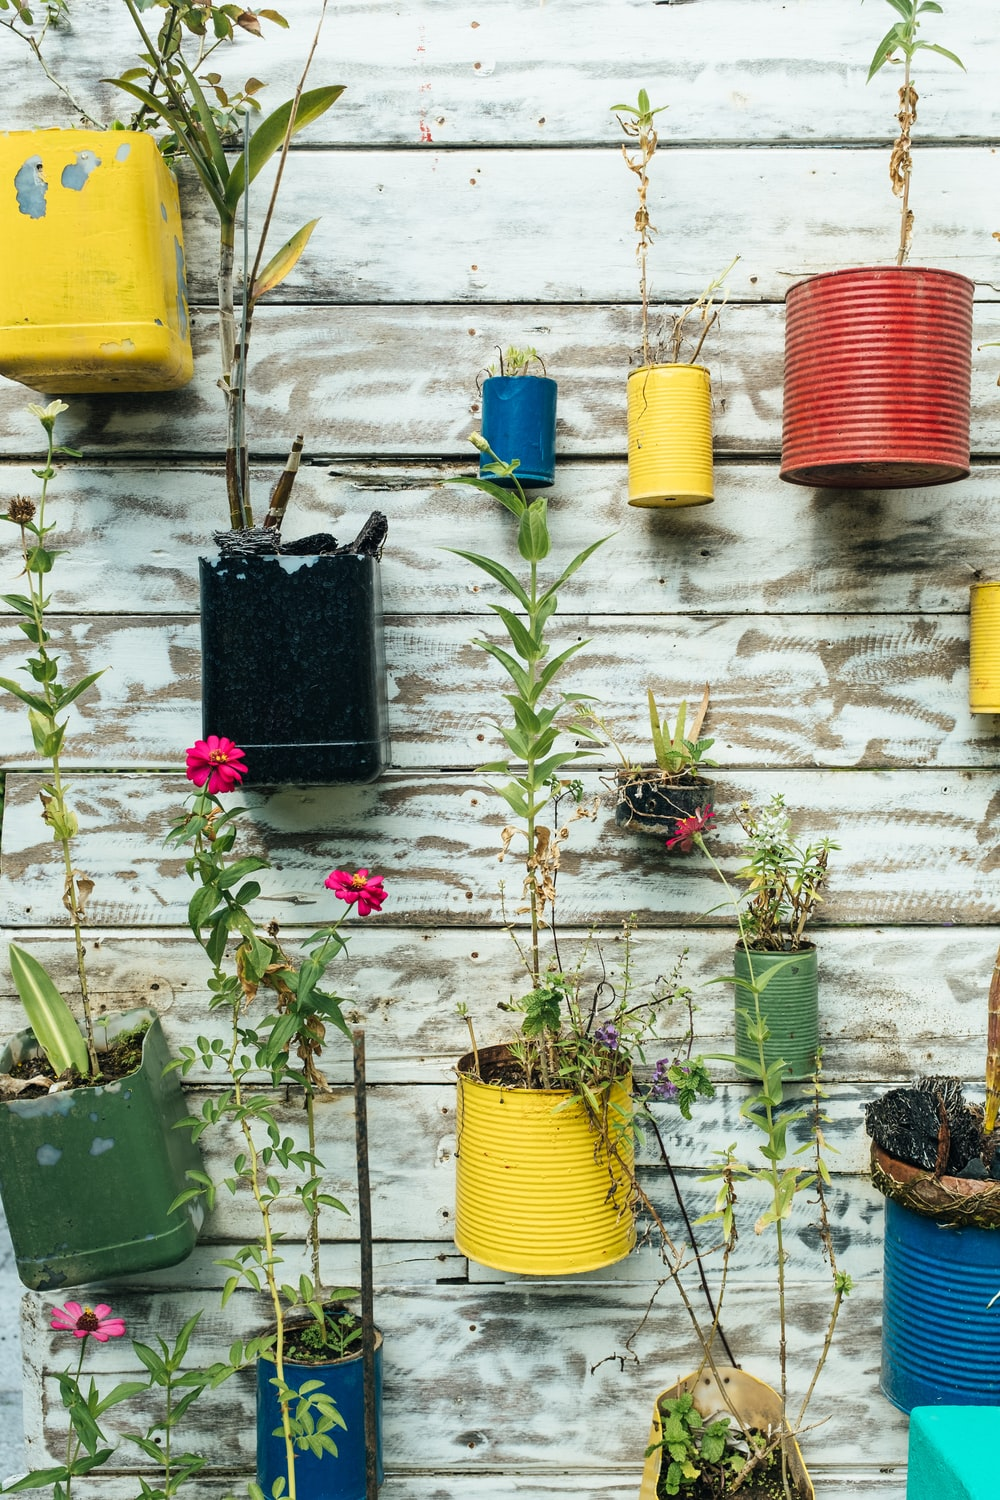 upcycling ideas, upcycled cans, shelf, shelves